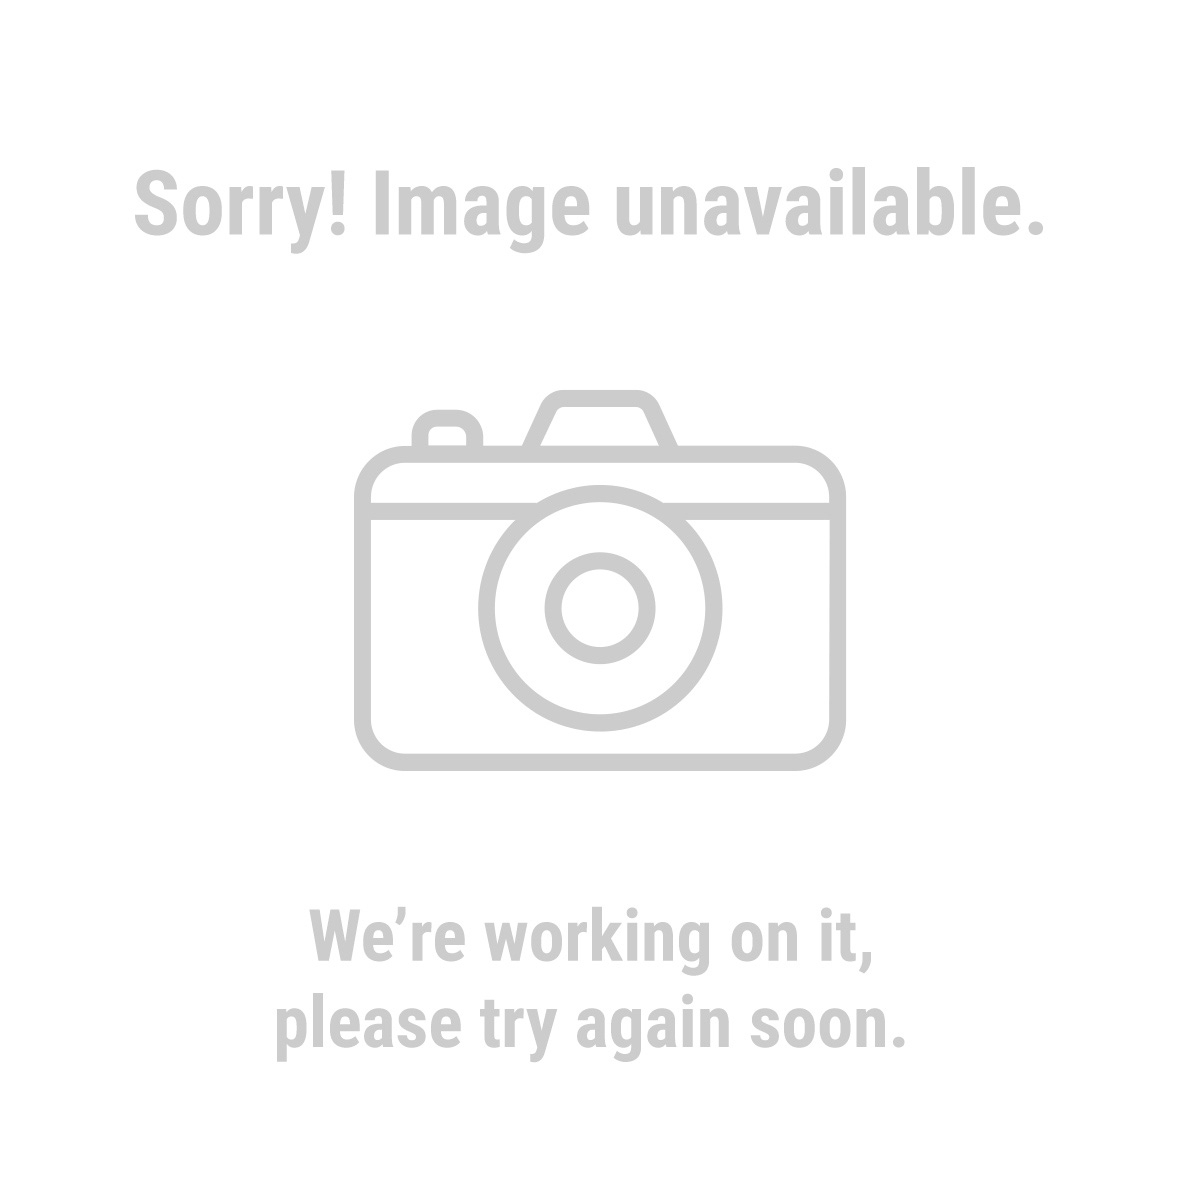 3000 lb. Electric ATV/UTV Winch with Automatic Load-Holding Brake